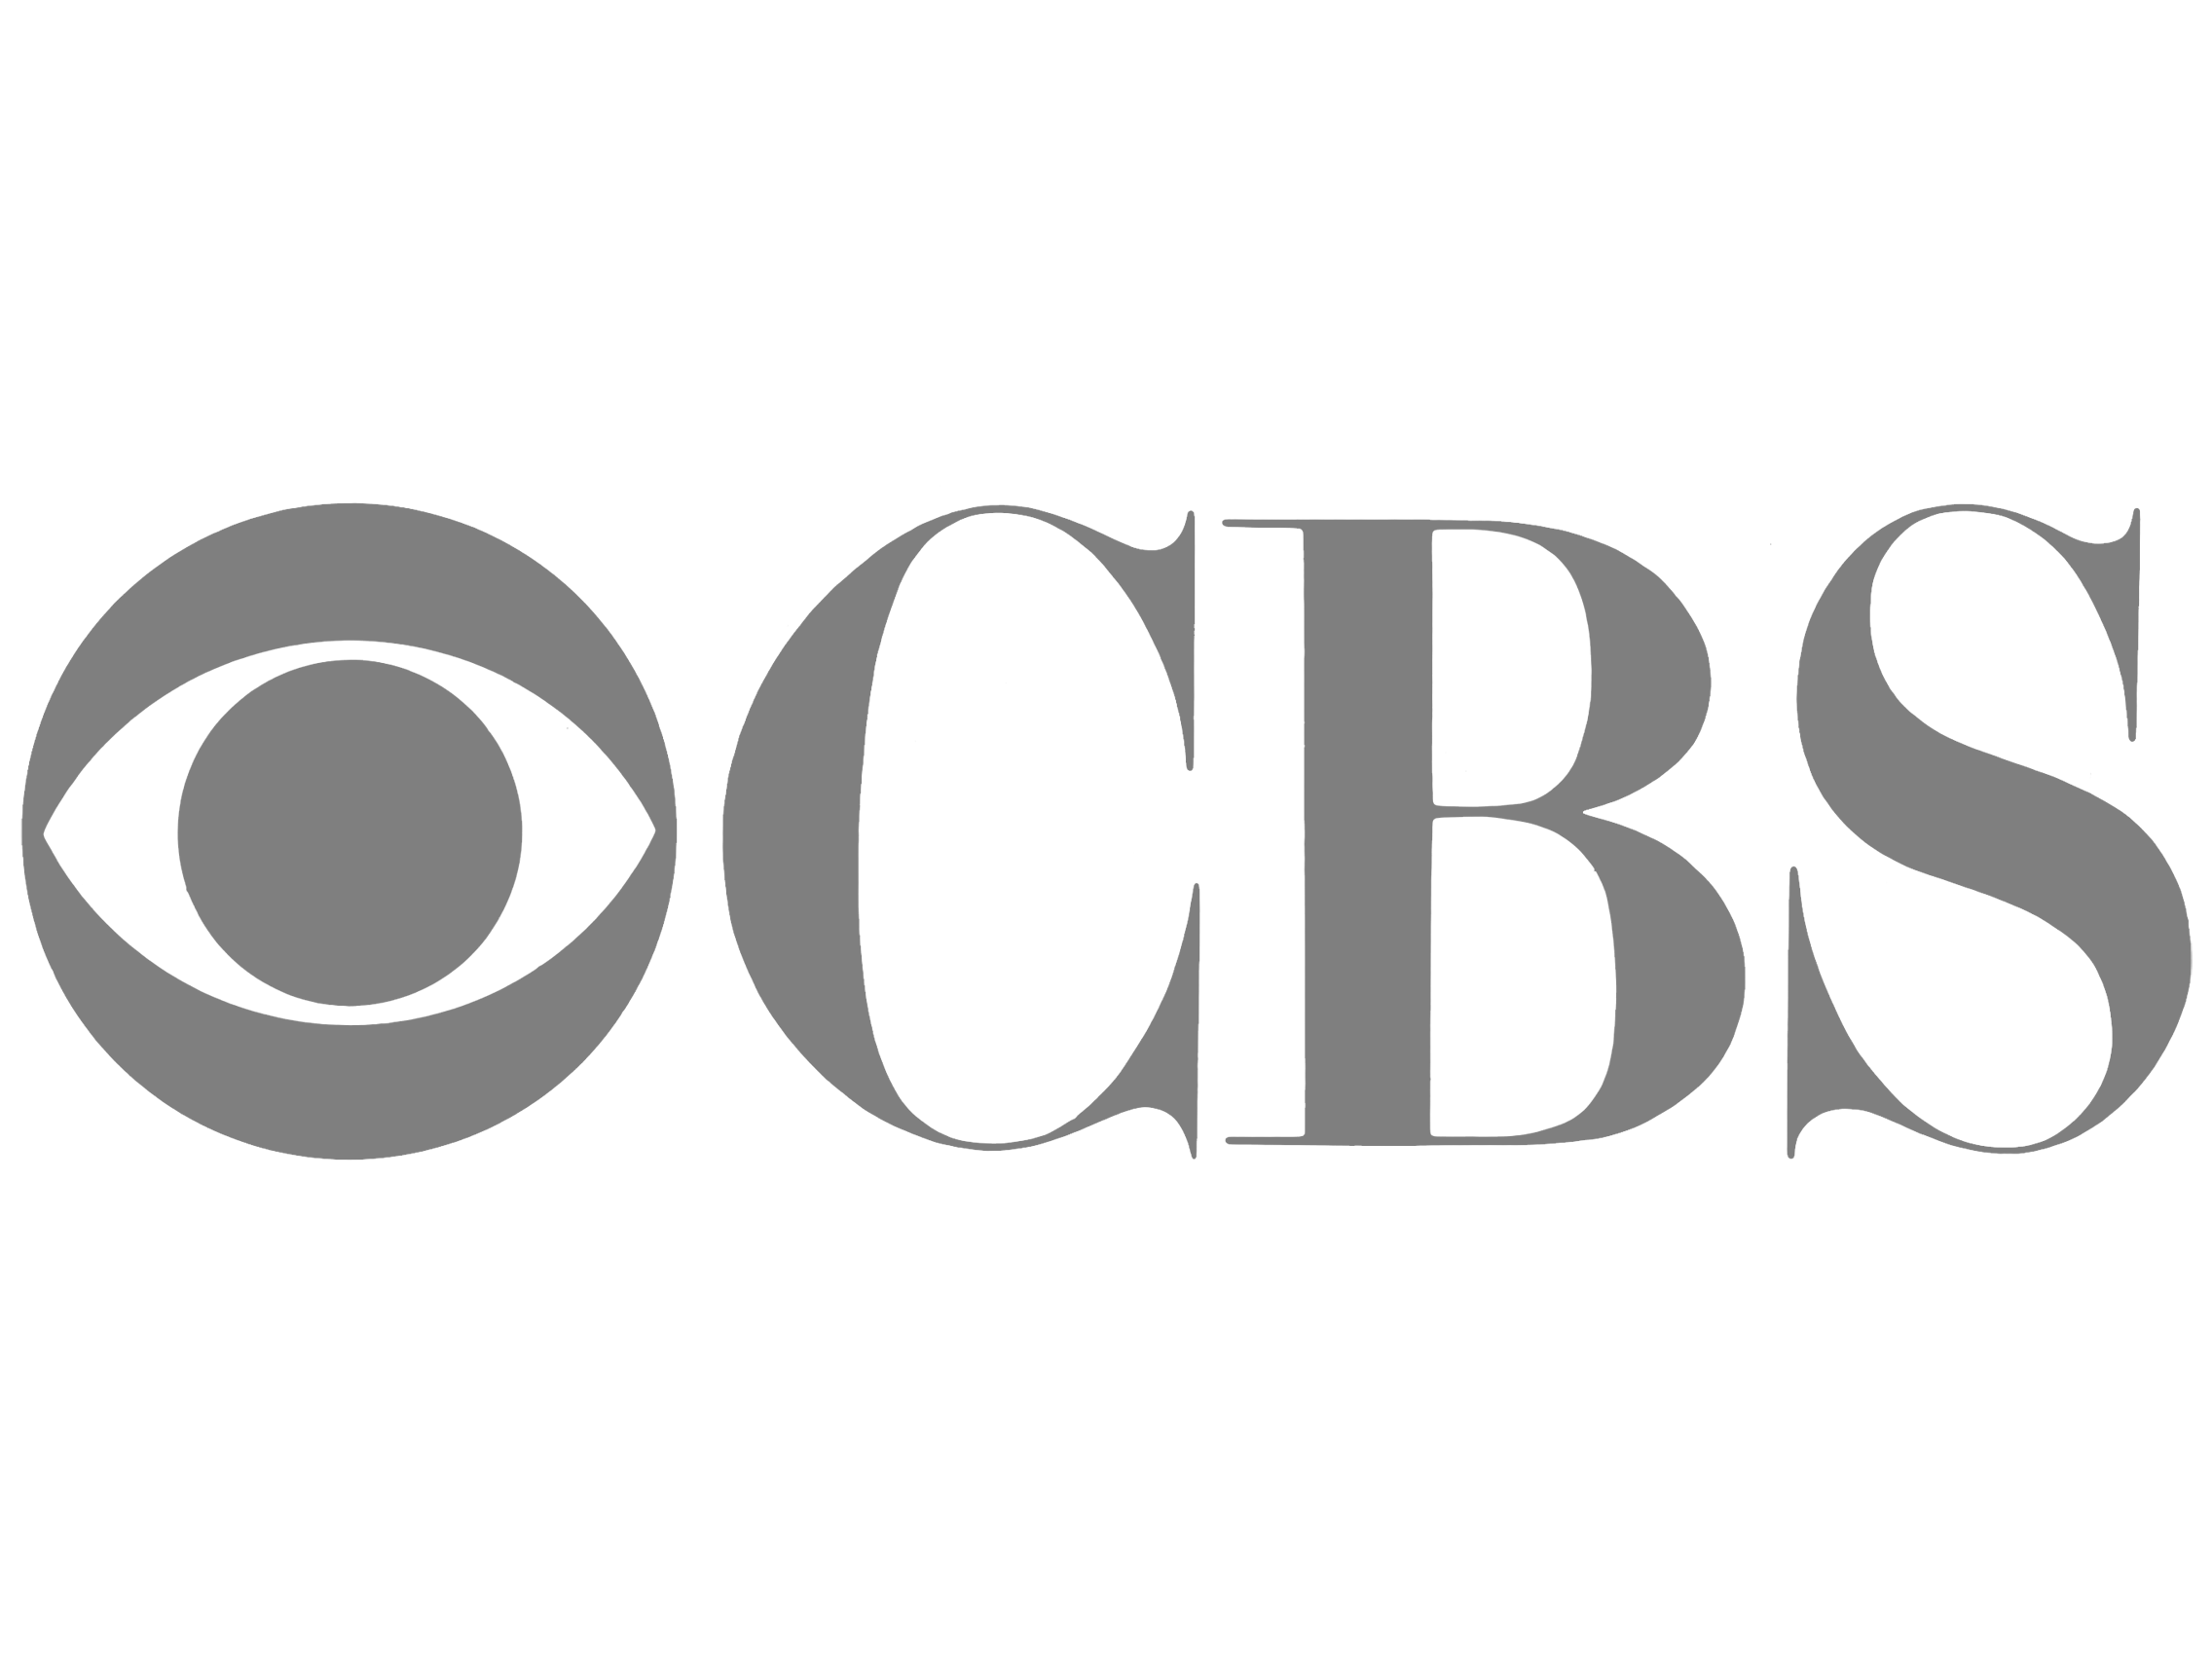 CBS-logo-old.png